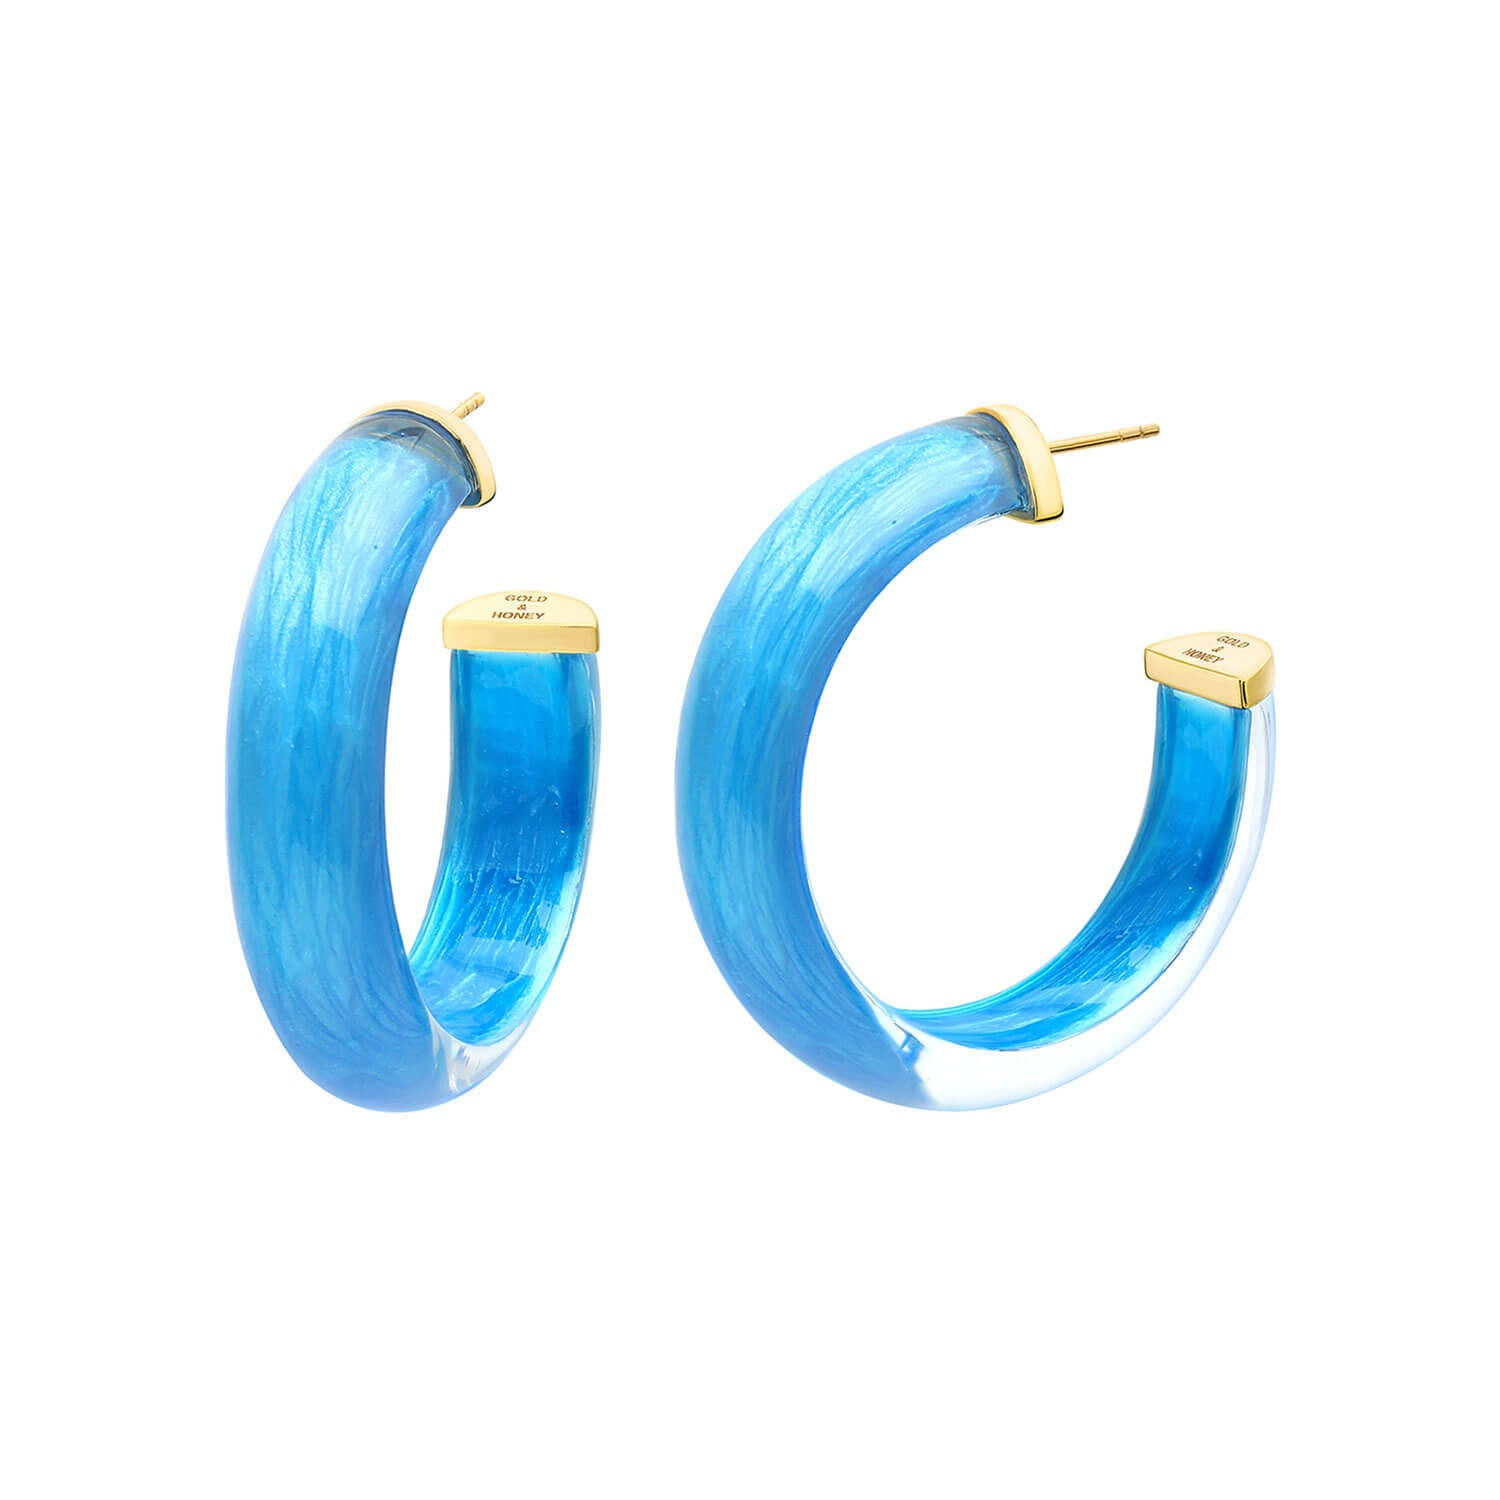 Small Illusion Lucite Hoops in ORIGINAL LAPIS